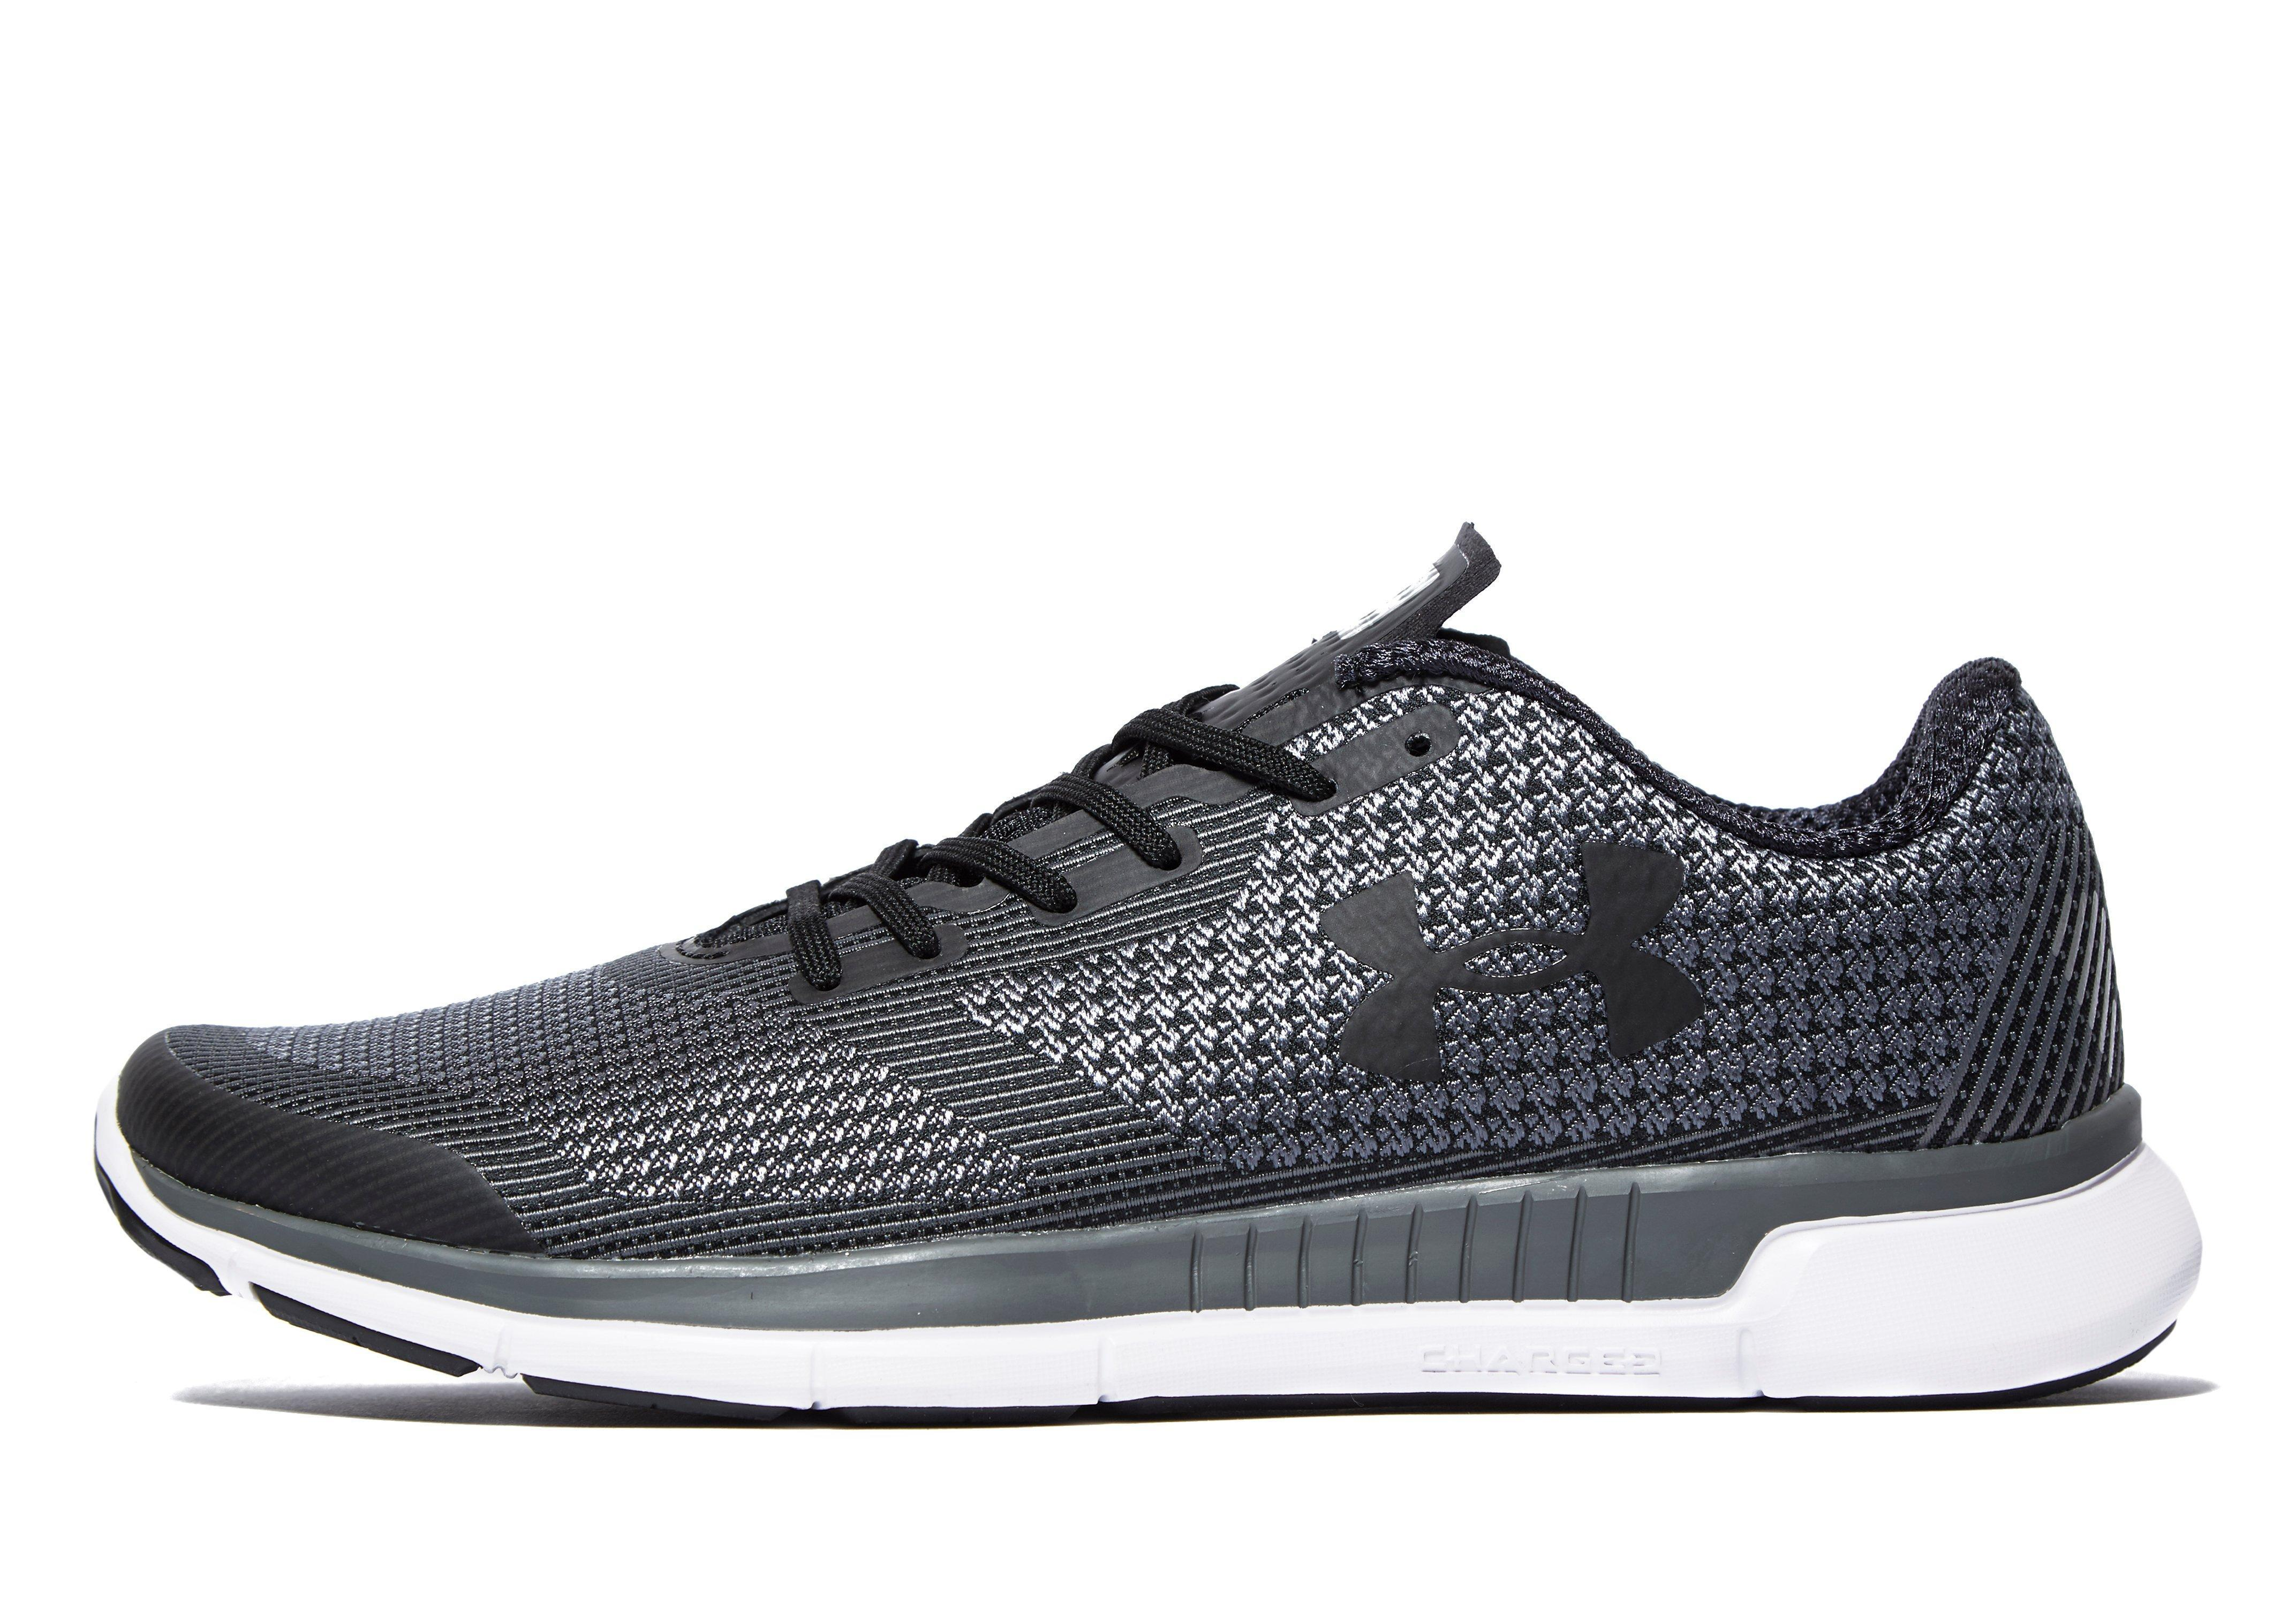 Under Armour Men S Charged Lightning Running Shoes